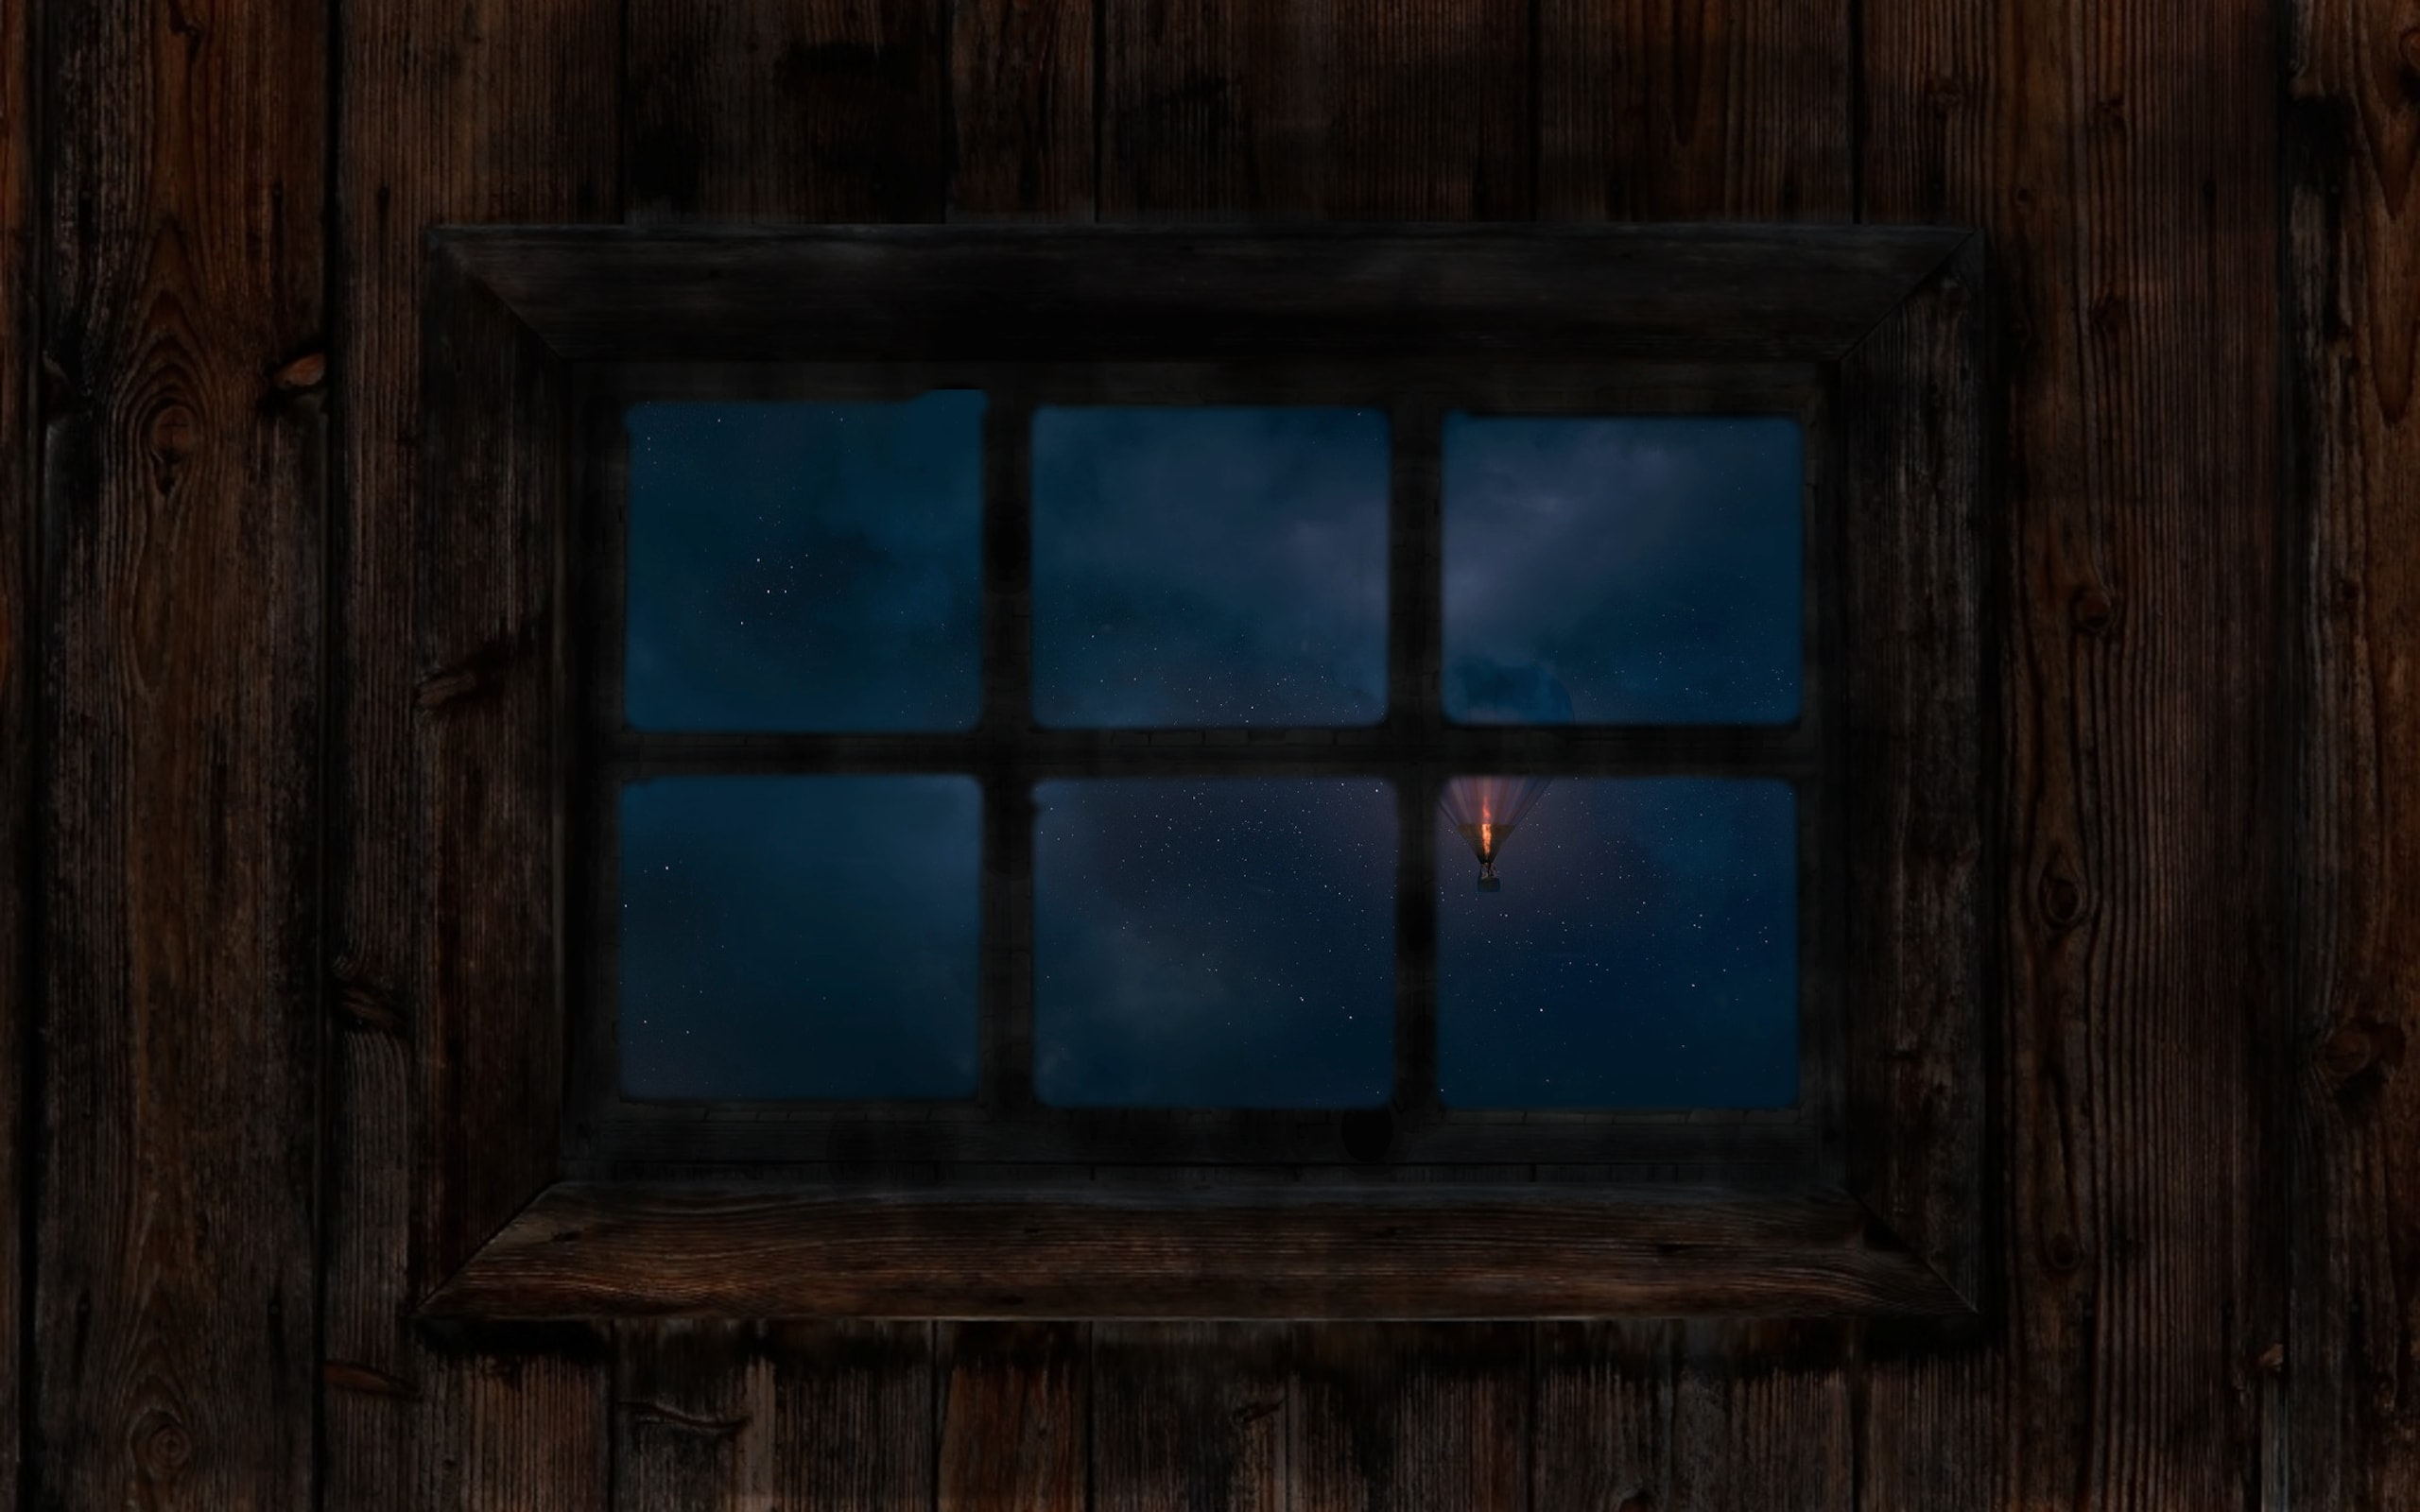 rectangular 6-pane window on brown wooden wall at nighttime